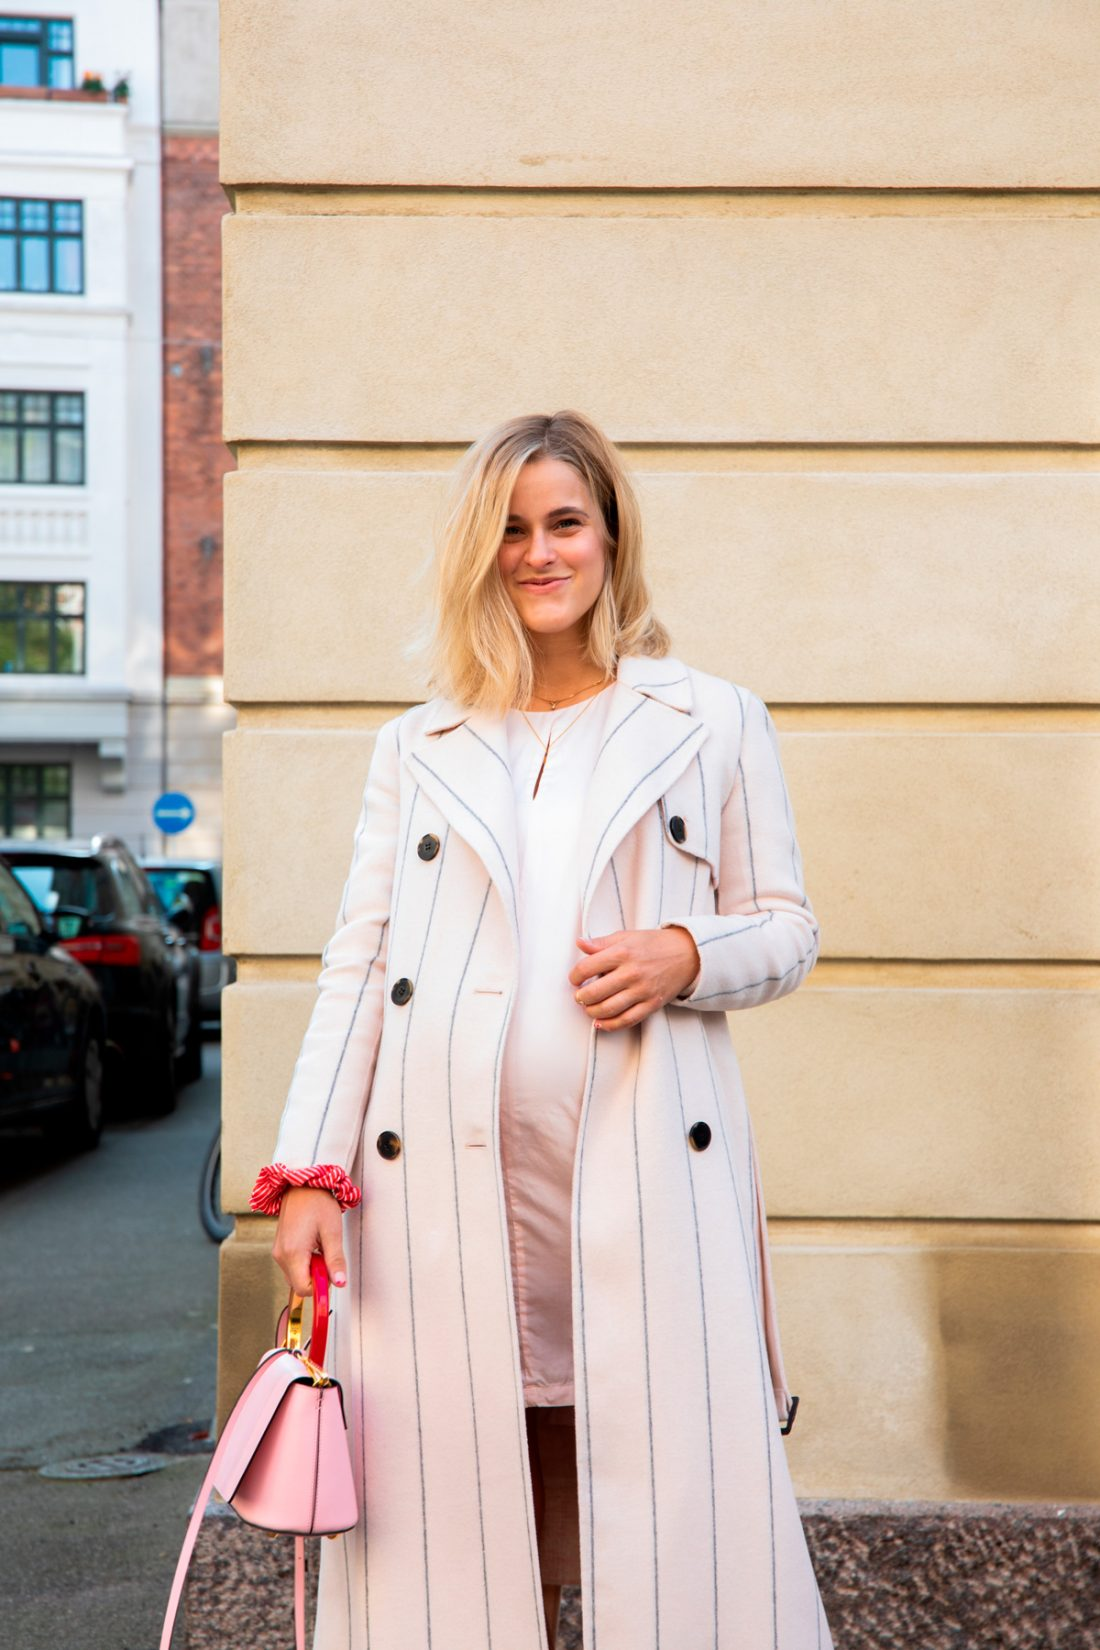 rockpaperdresses, Cathrine Widunok Wichmand, Selected Femme, Gold collection, Pink onsdag